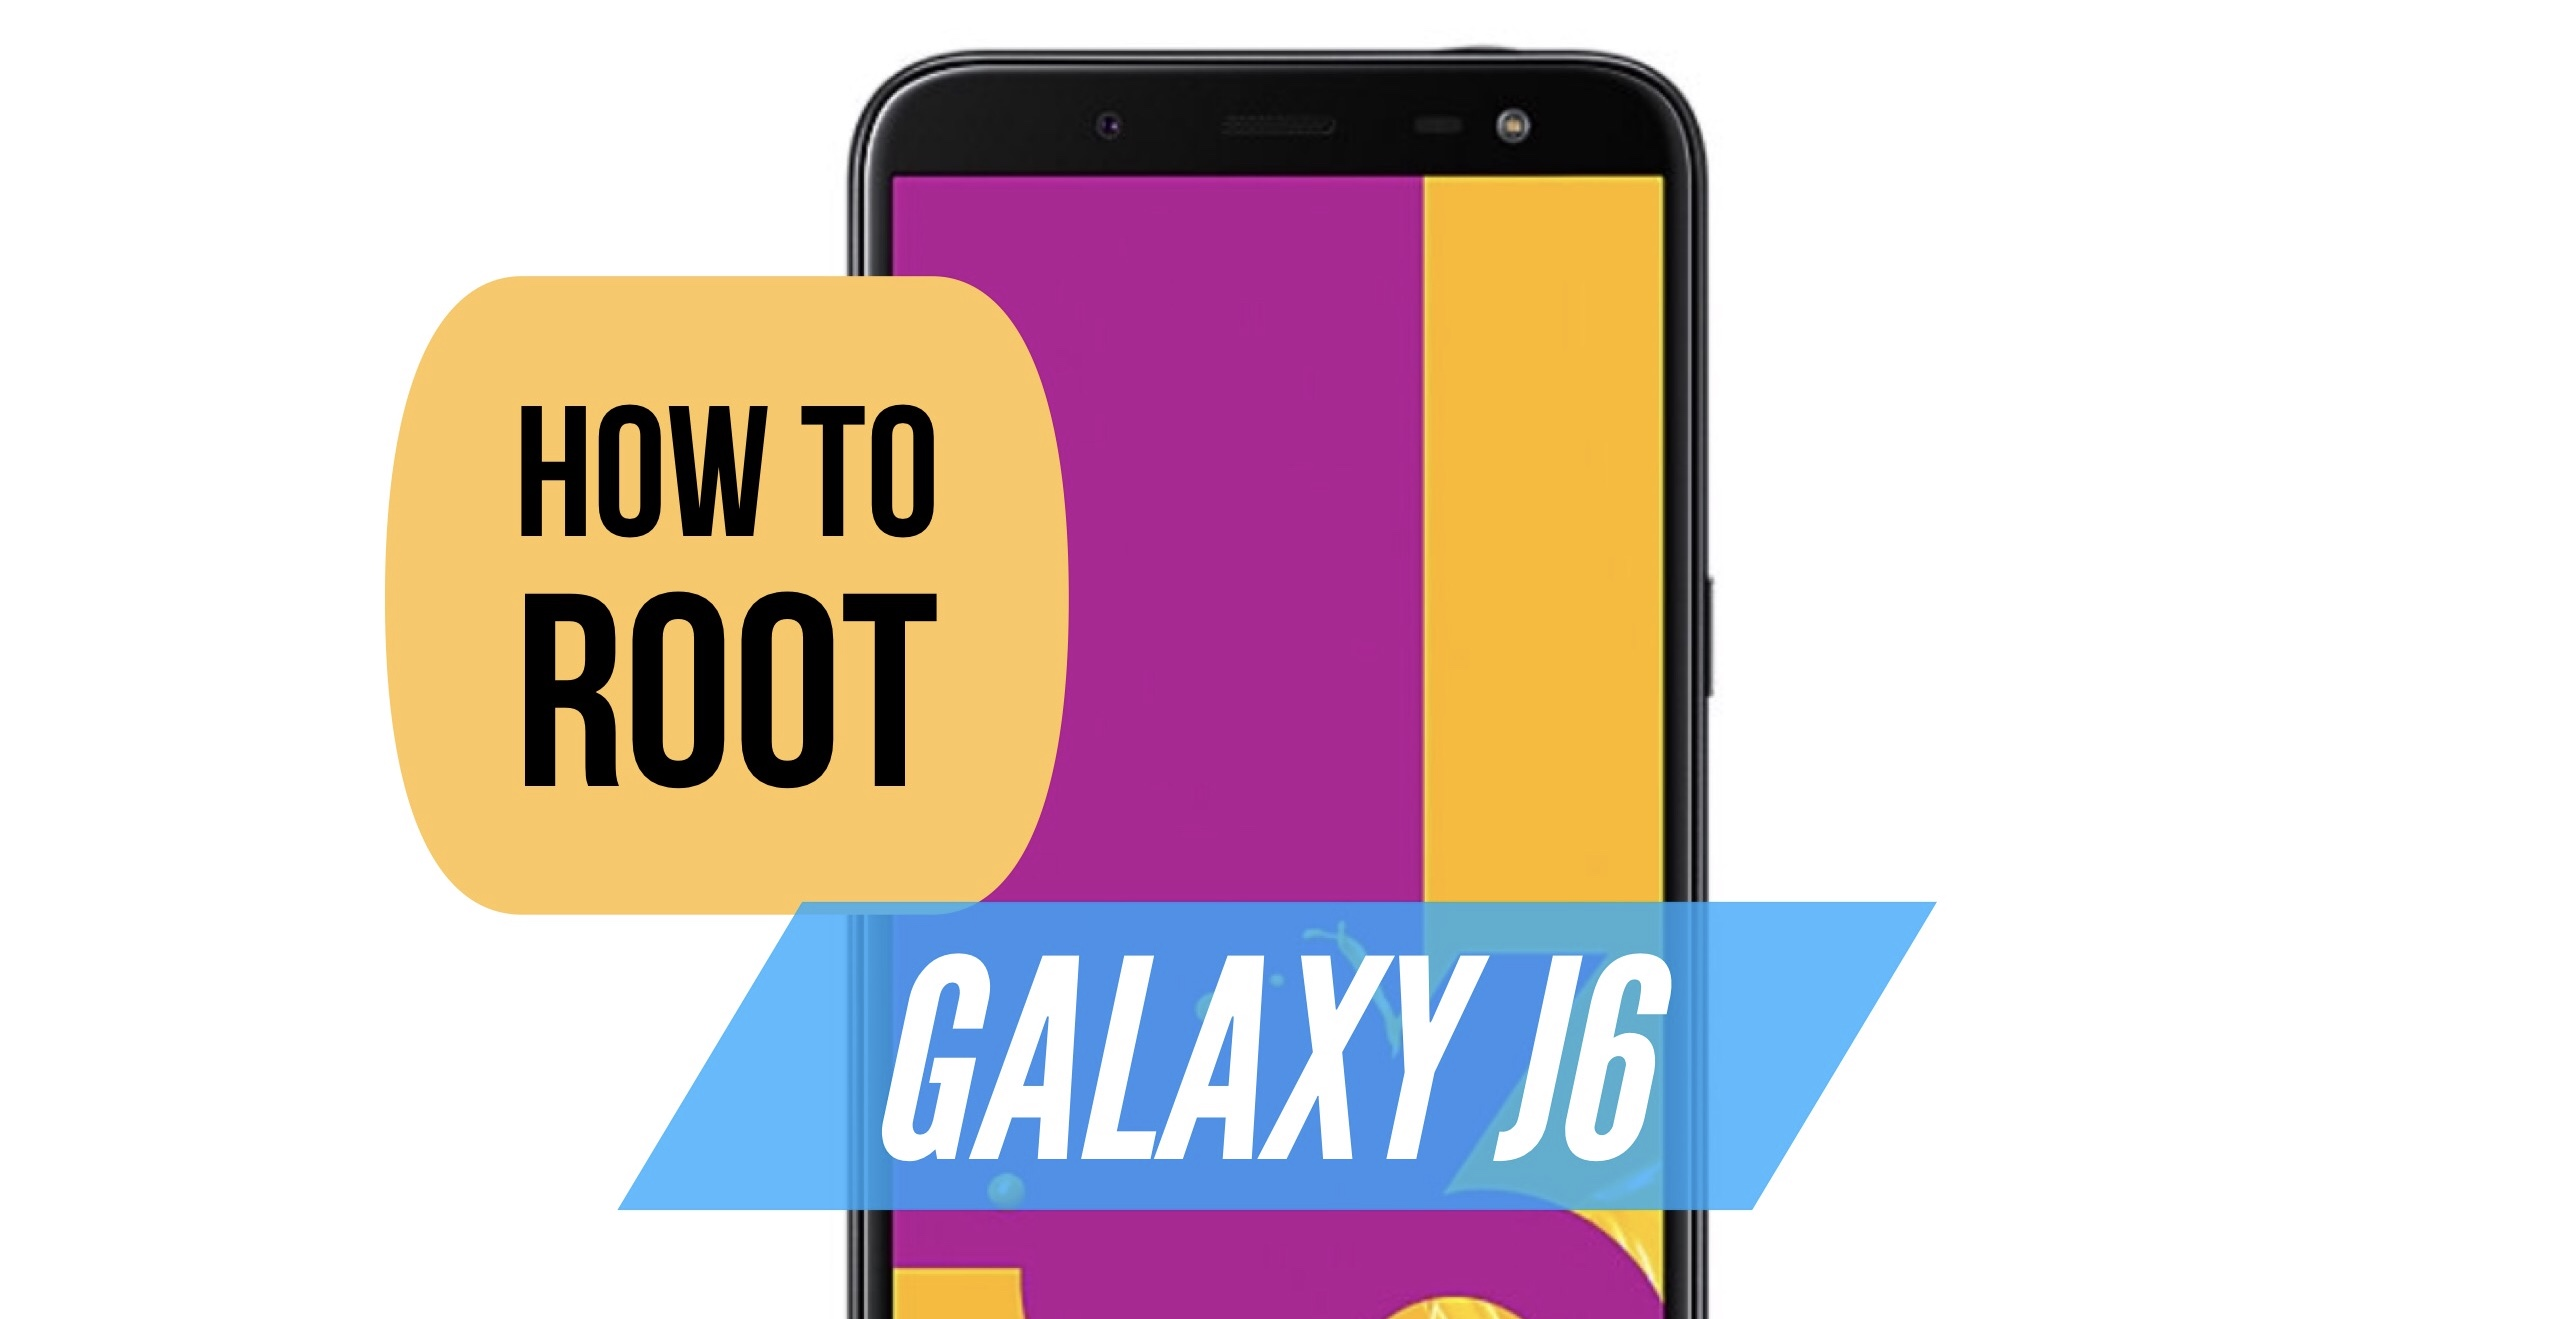 How to Root Samsung Galaxy J6? Easy Step by Step GUIDE!